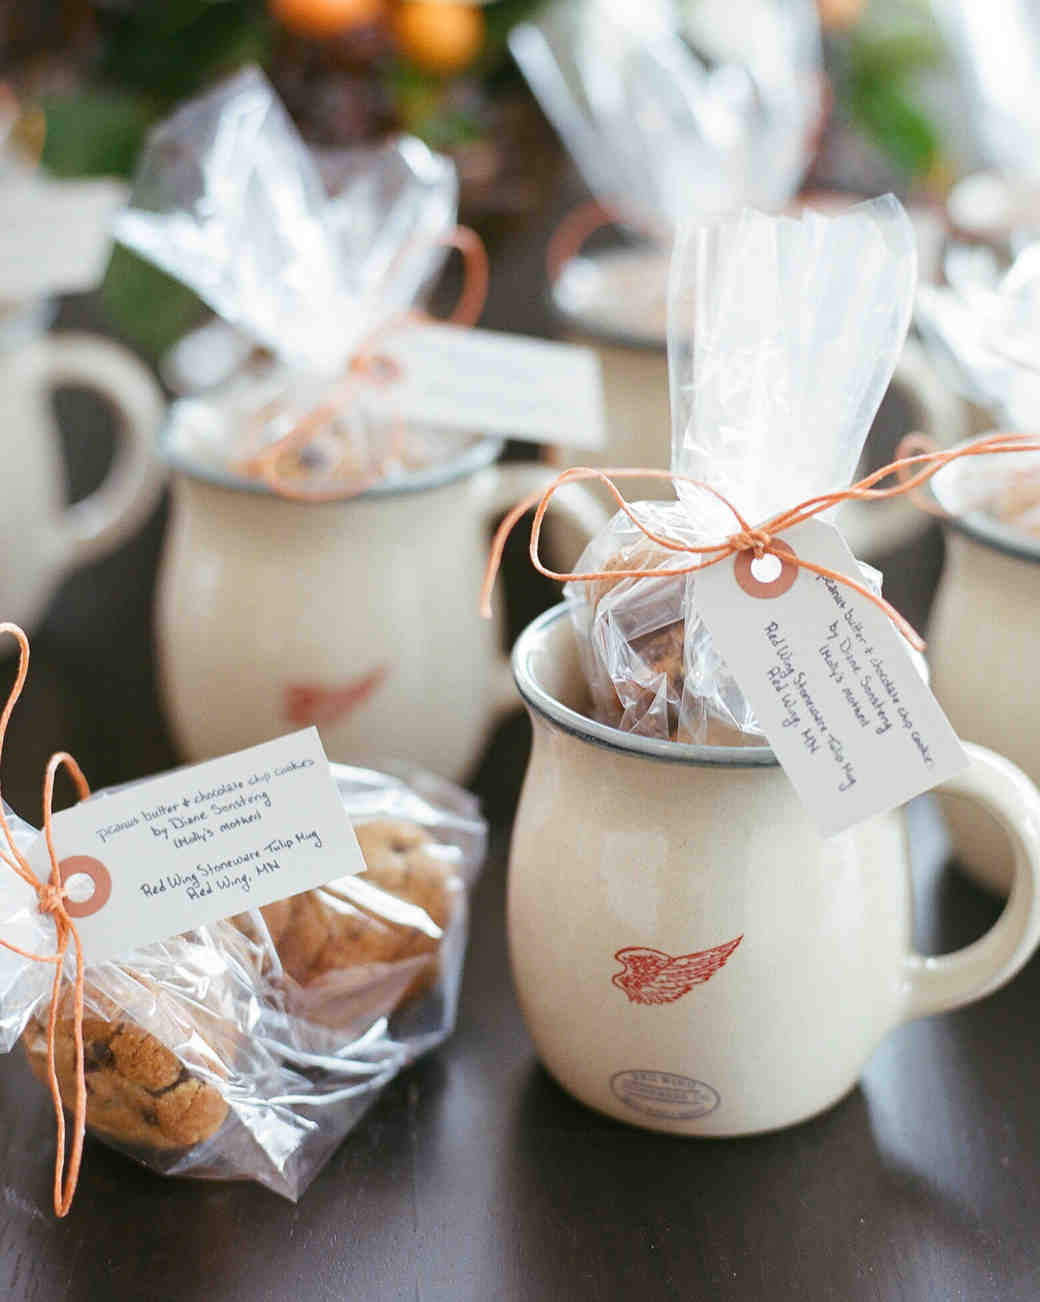 Best ideas about Wedding Party Gift Ideas . Save or Pin 24 Unique Winter Wedding Favor Ideas Now.